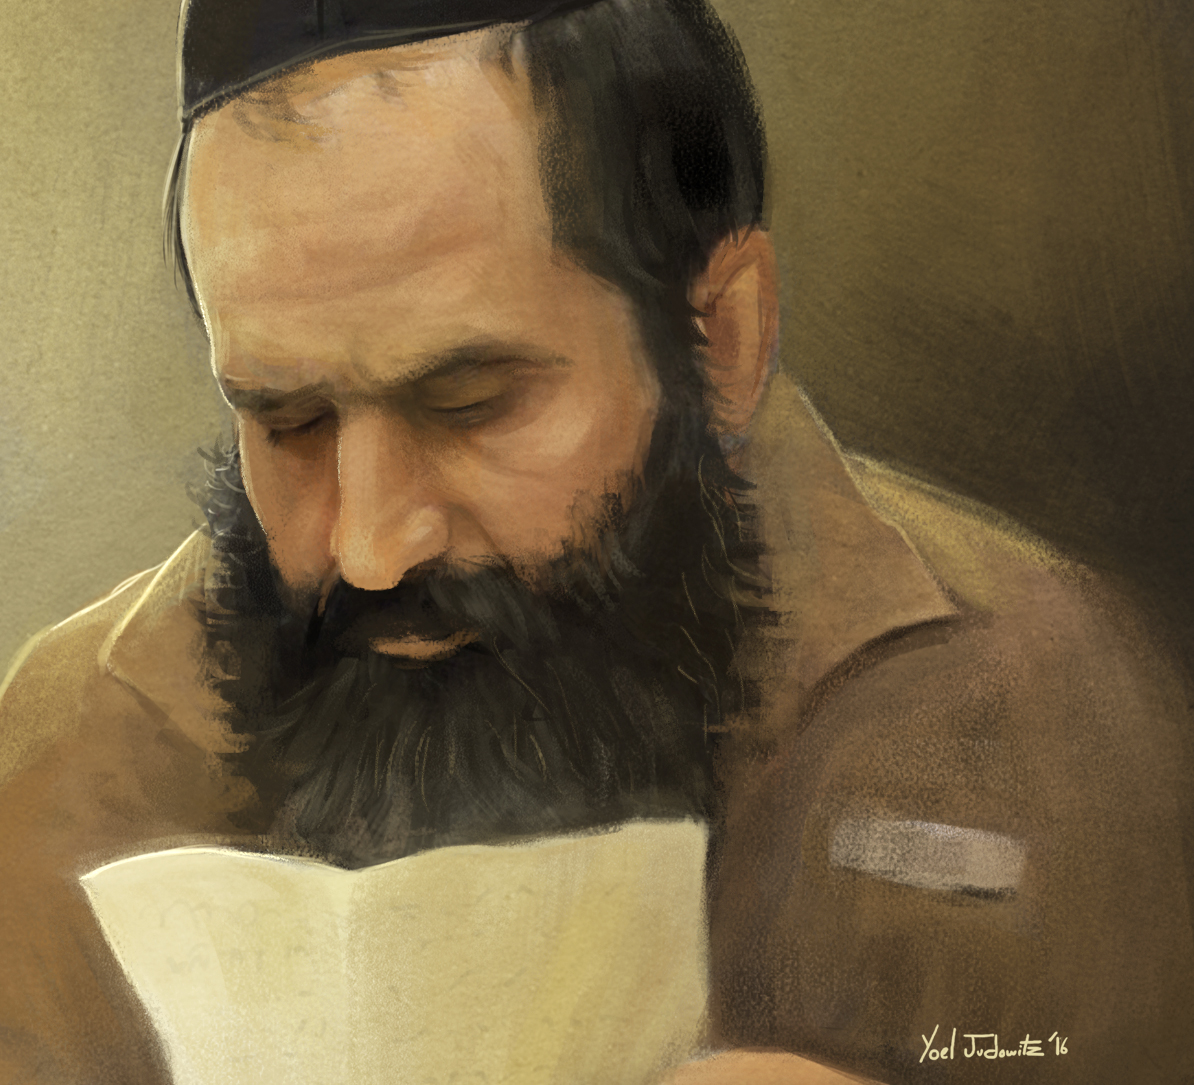 sholom rubashkin painting portrait and yated essay yoel judowitz rubashkin portrait detail